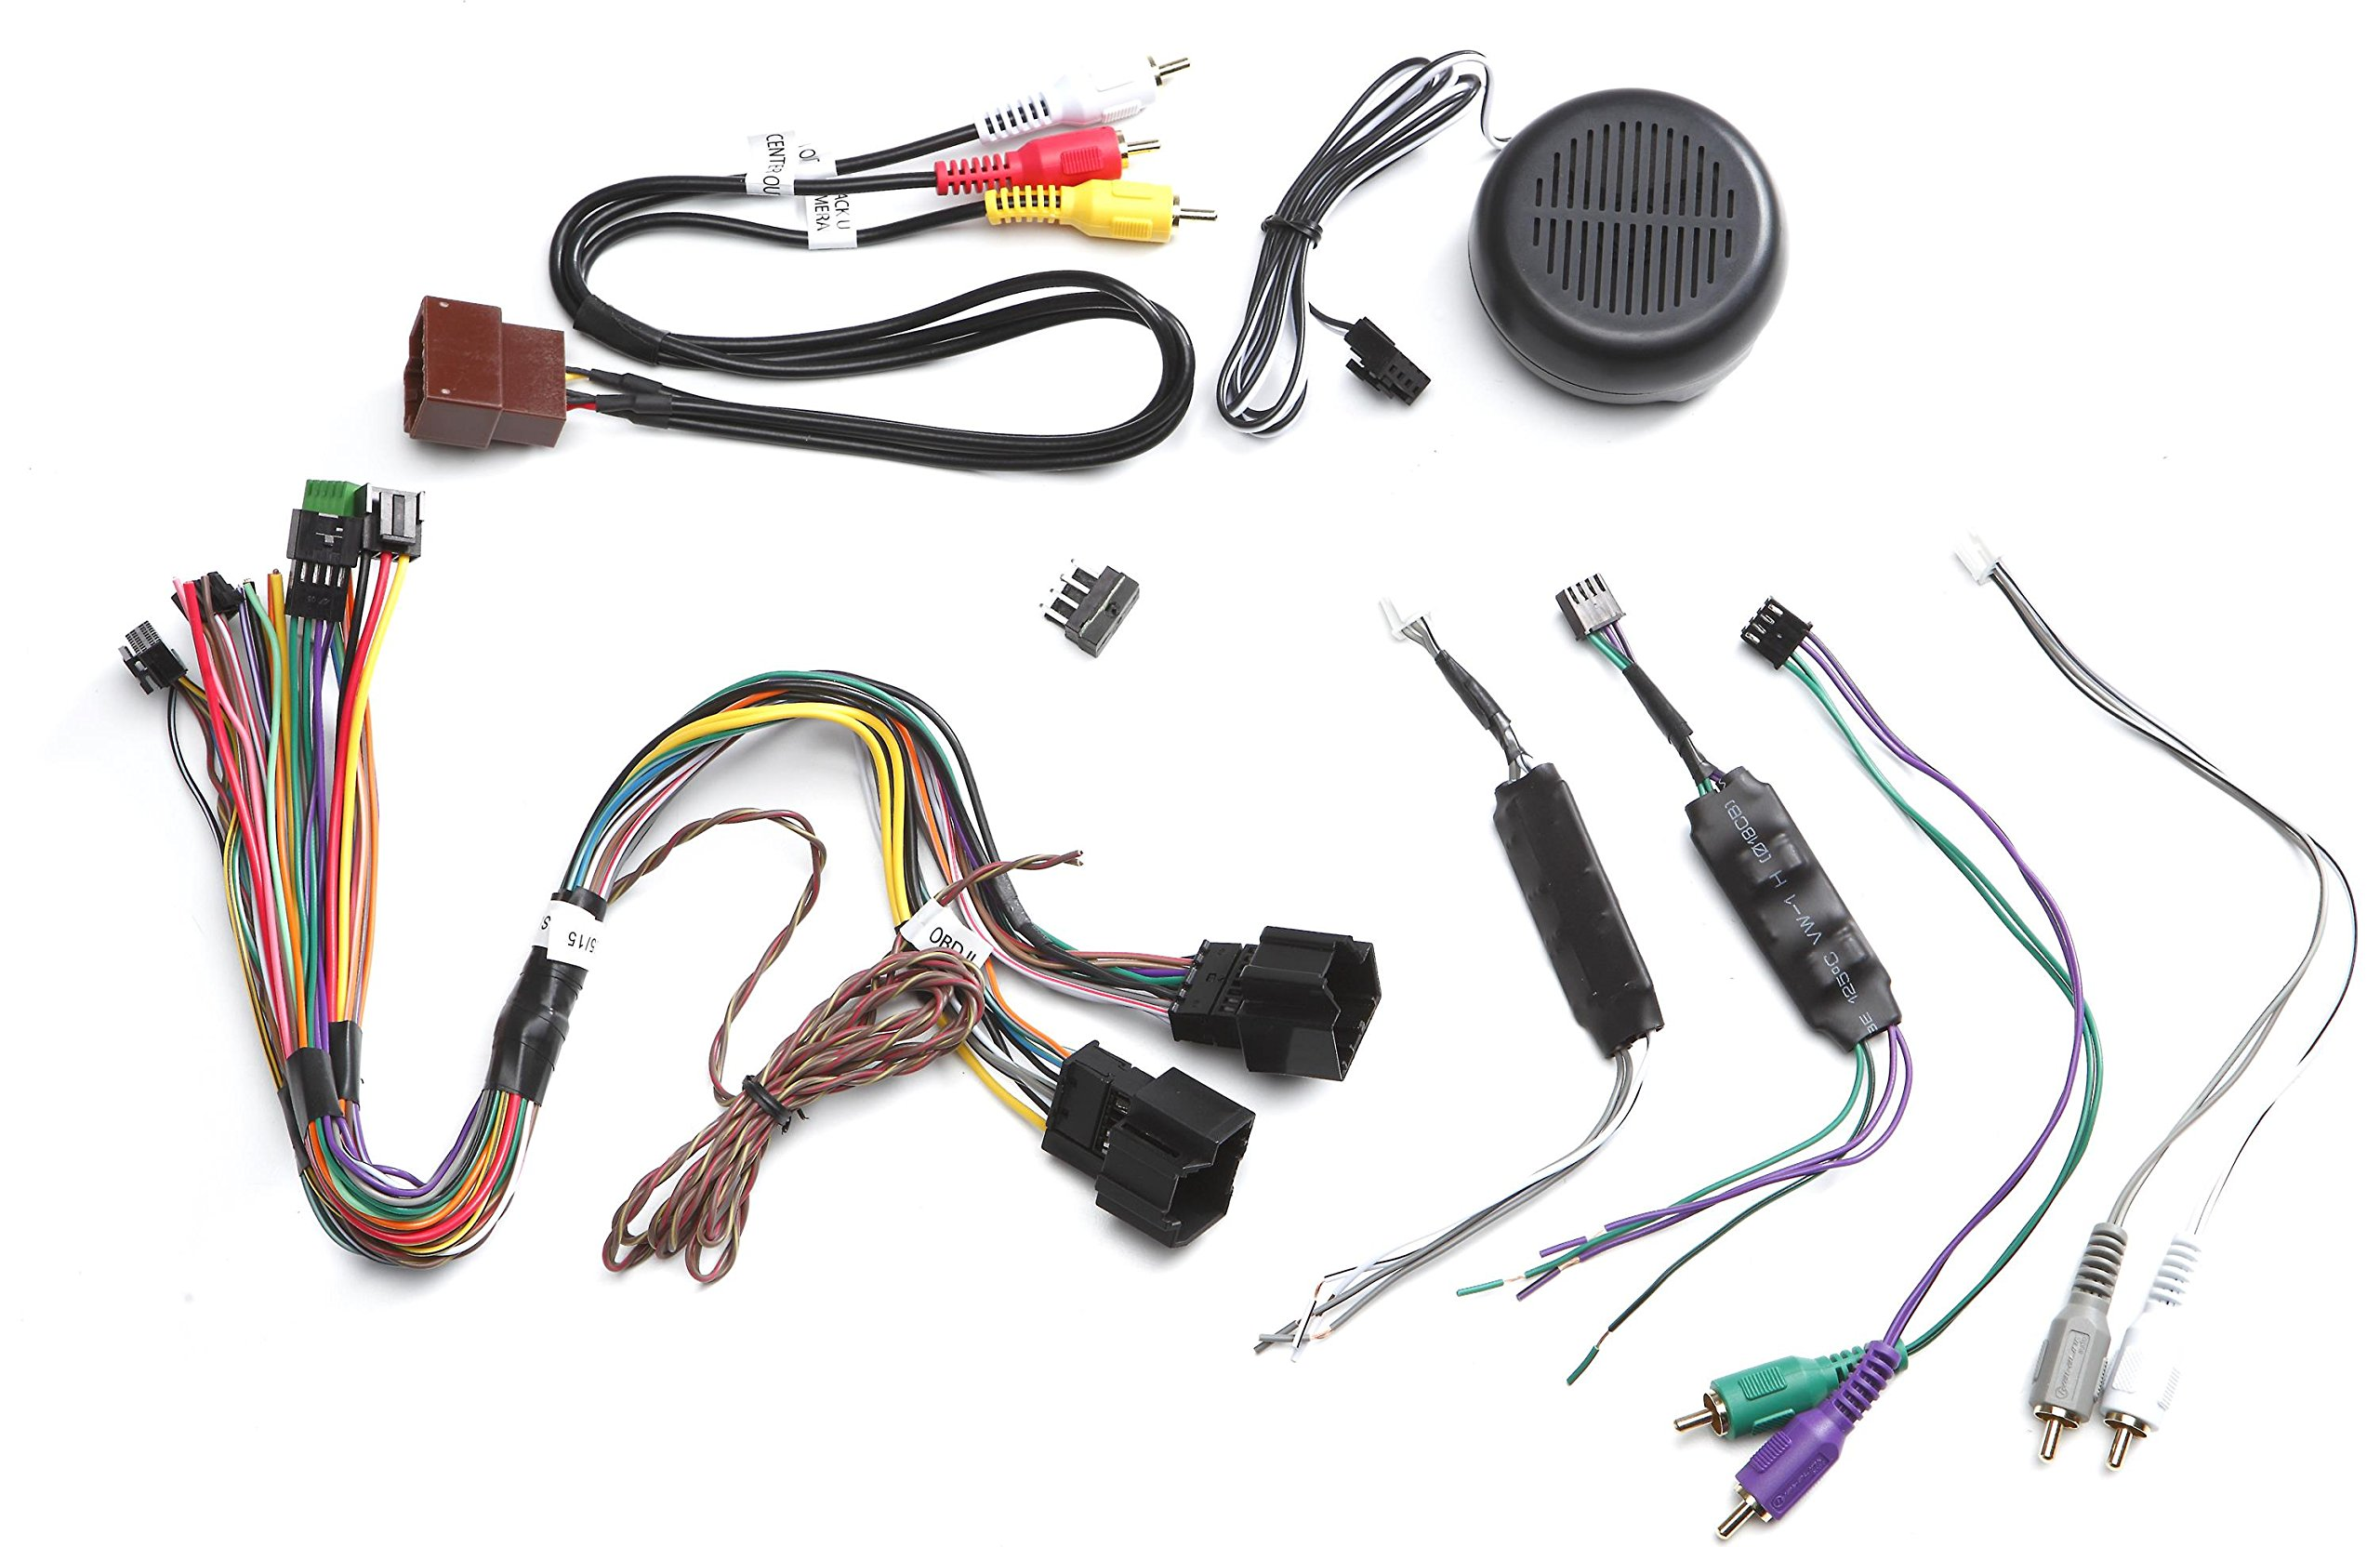 ADS-HRN-RR-GM5 GM5+ Plug & Play T-Harness for GM Vehicle, w/spkr by iDatalink Maestro